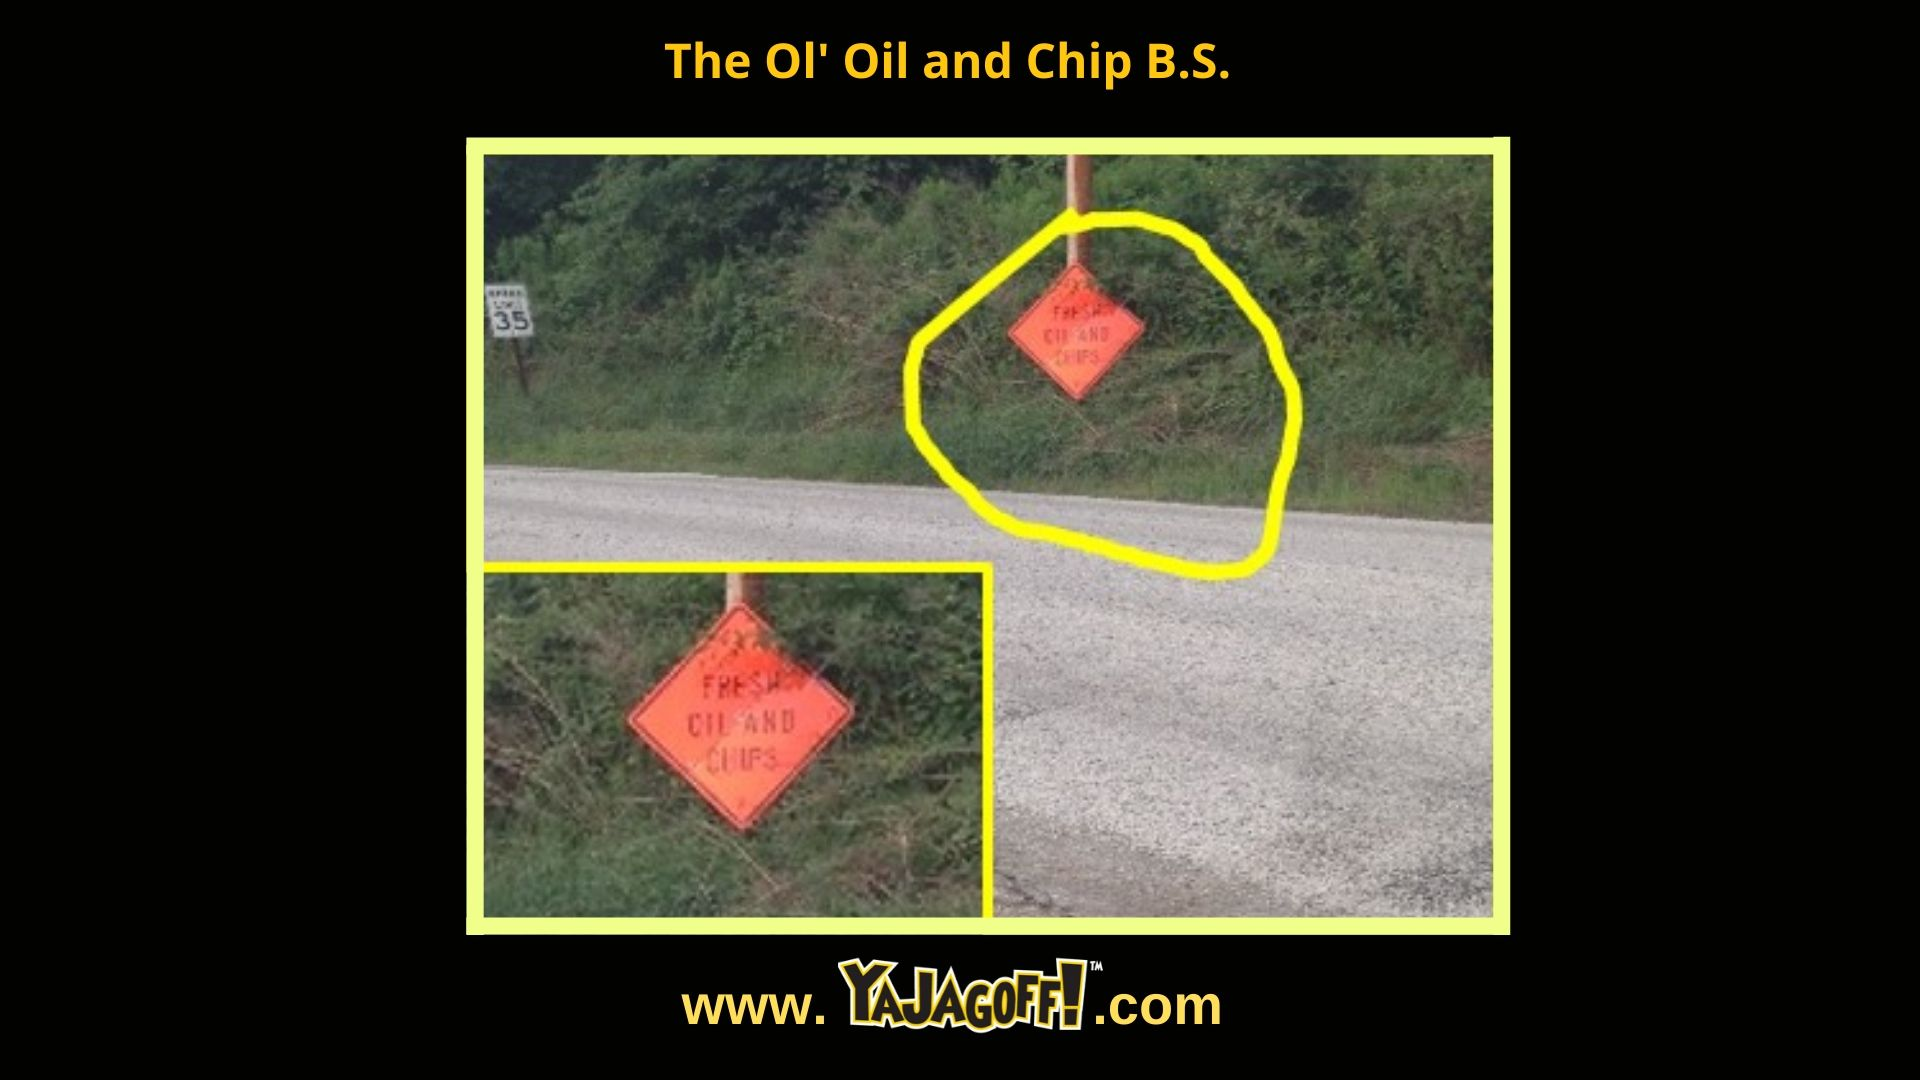 YaJagoff Oil and Chip Roads